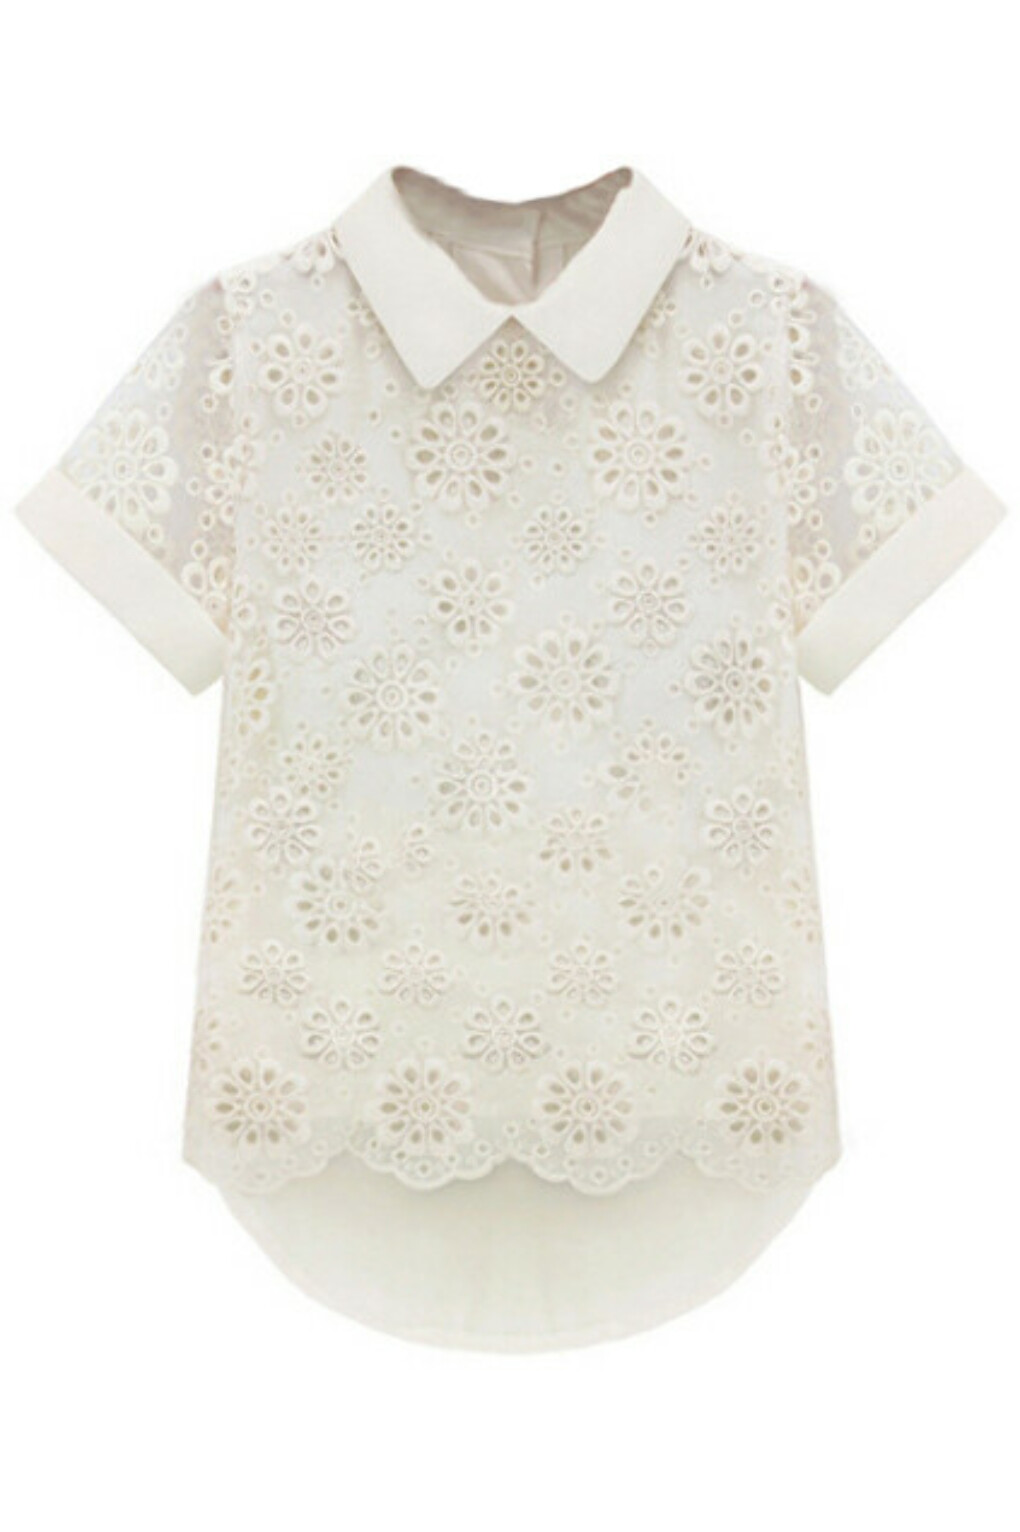 Lace Asymmetric Floral Emboidered White T-shirt